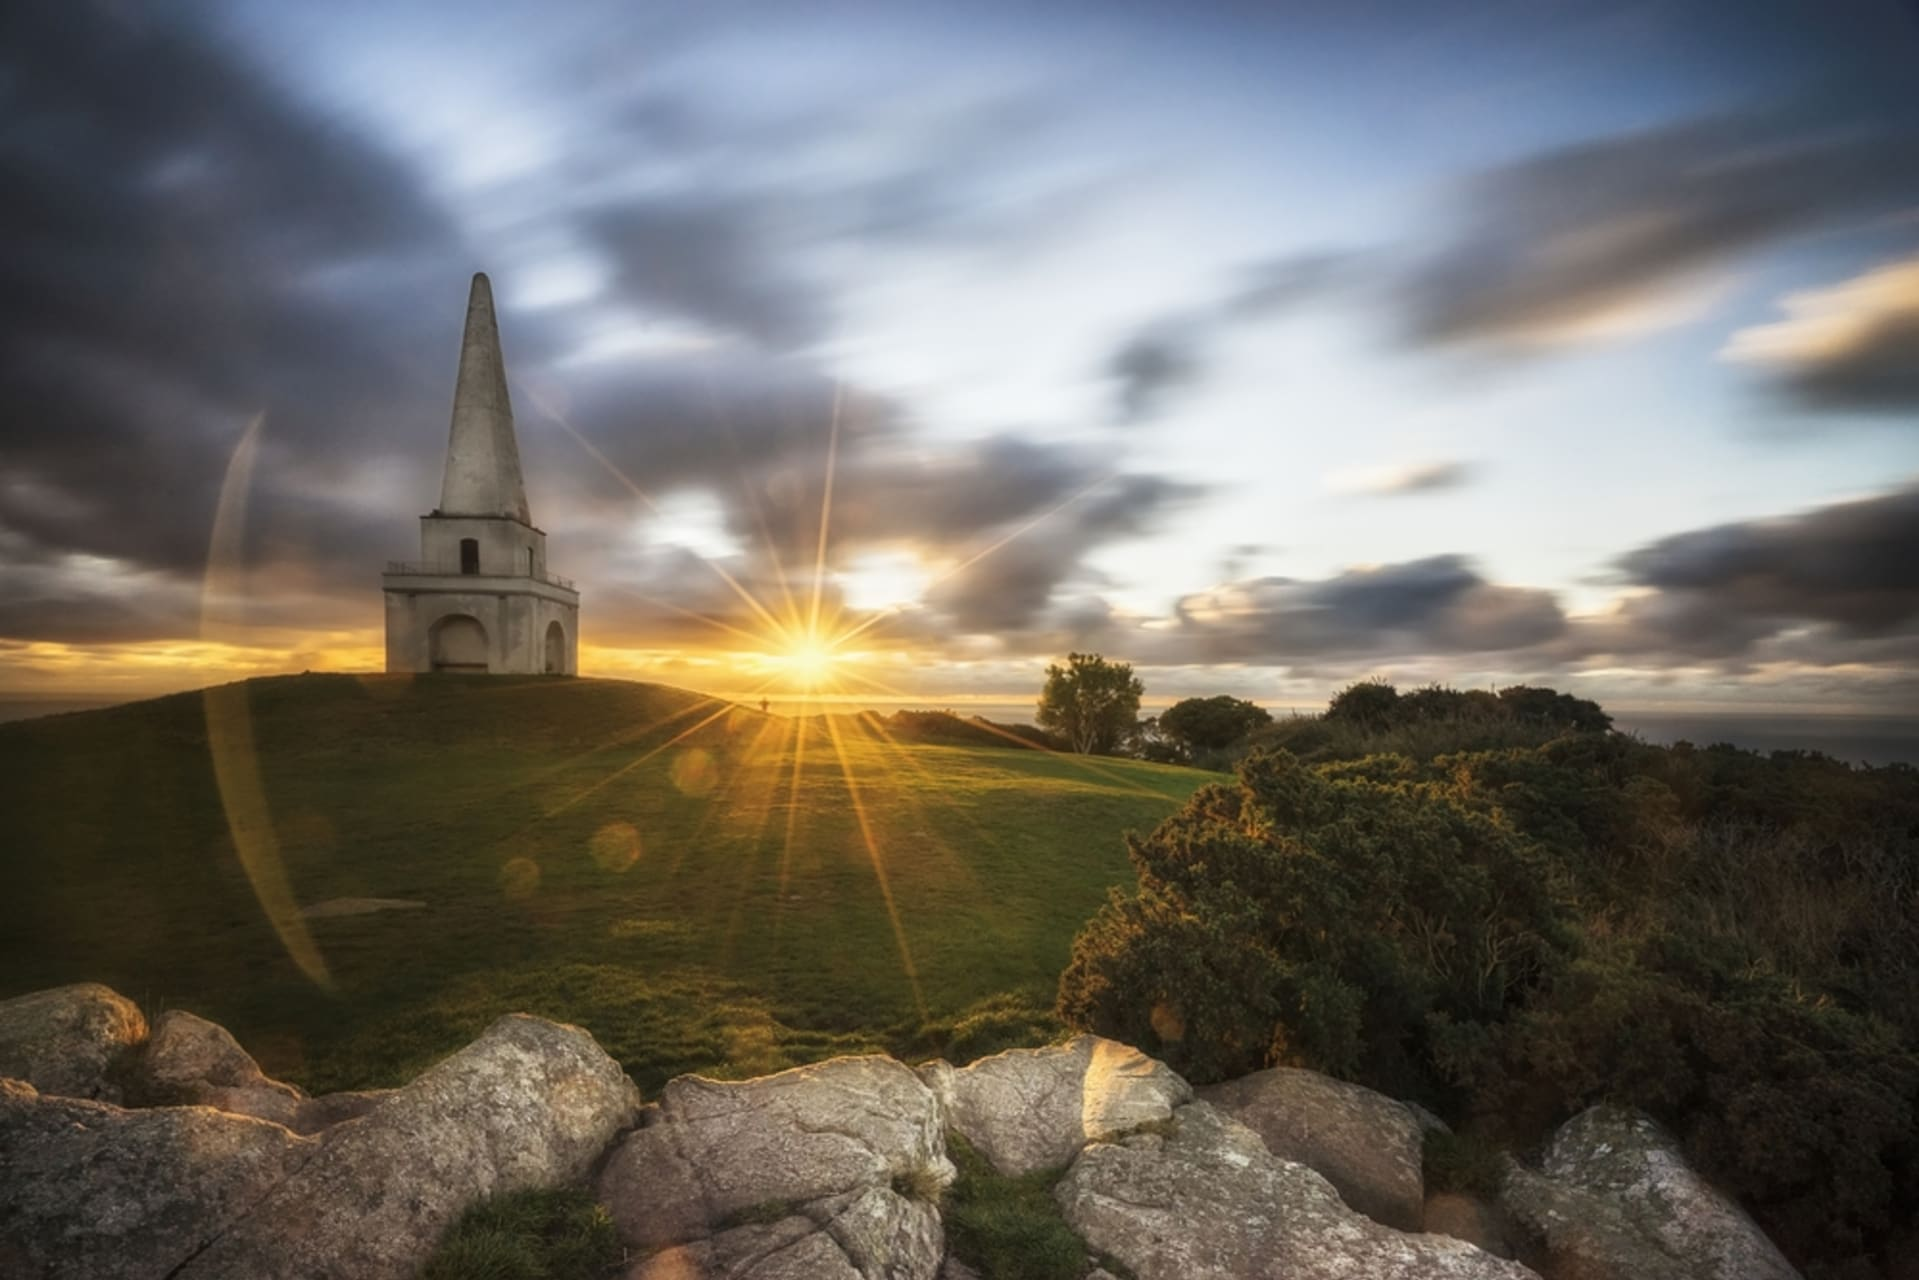 County Dublin - Sunsets, Witches Hats and Sea Views